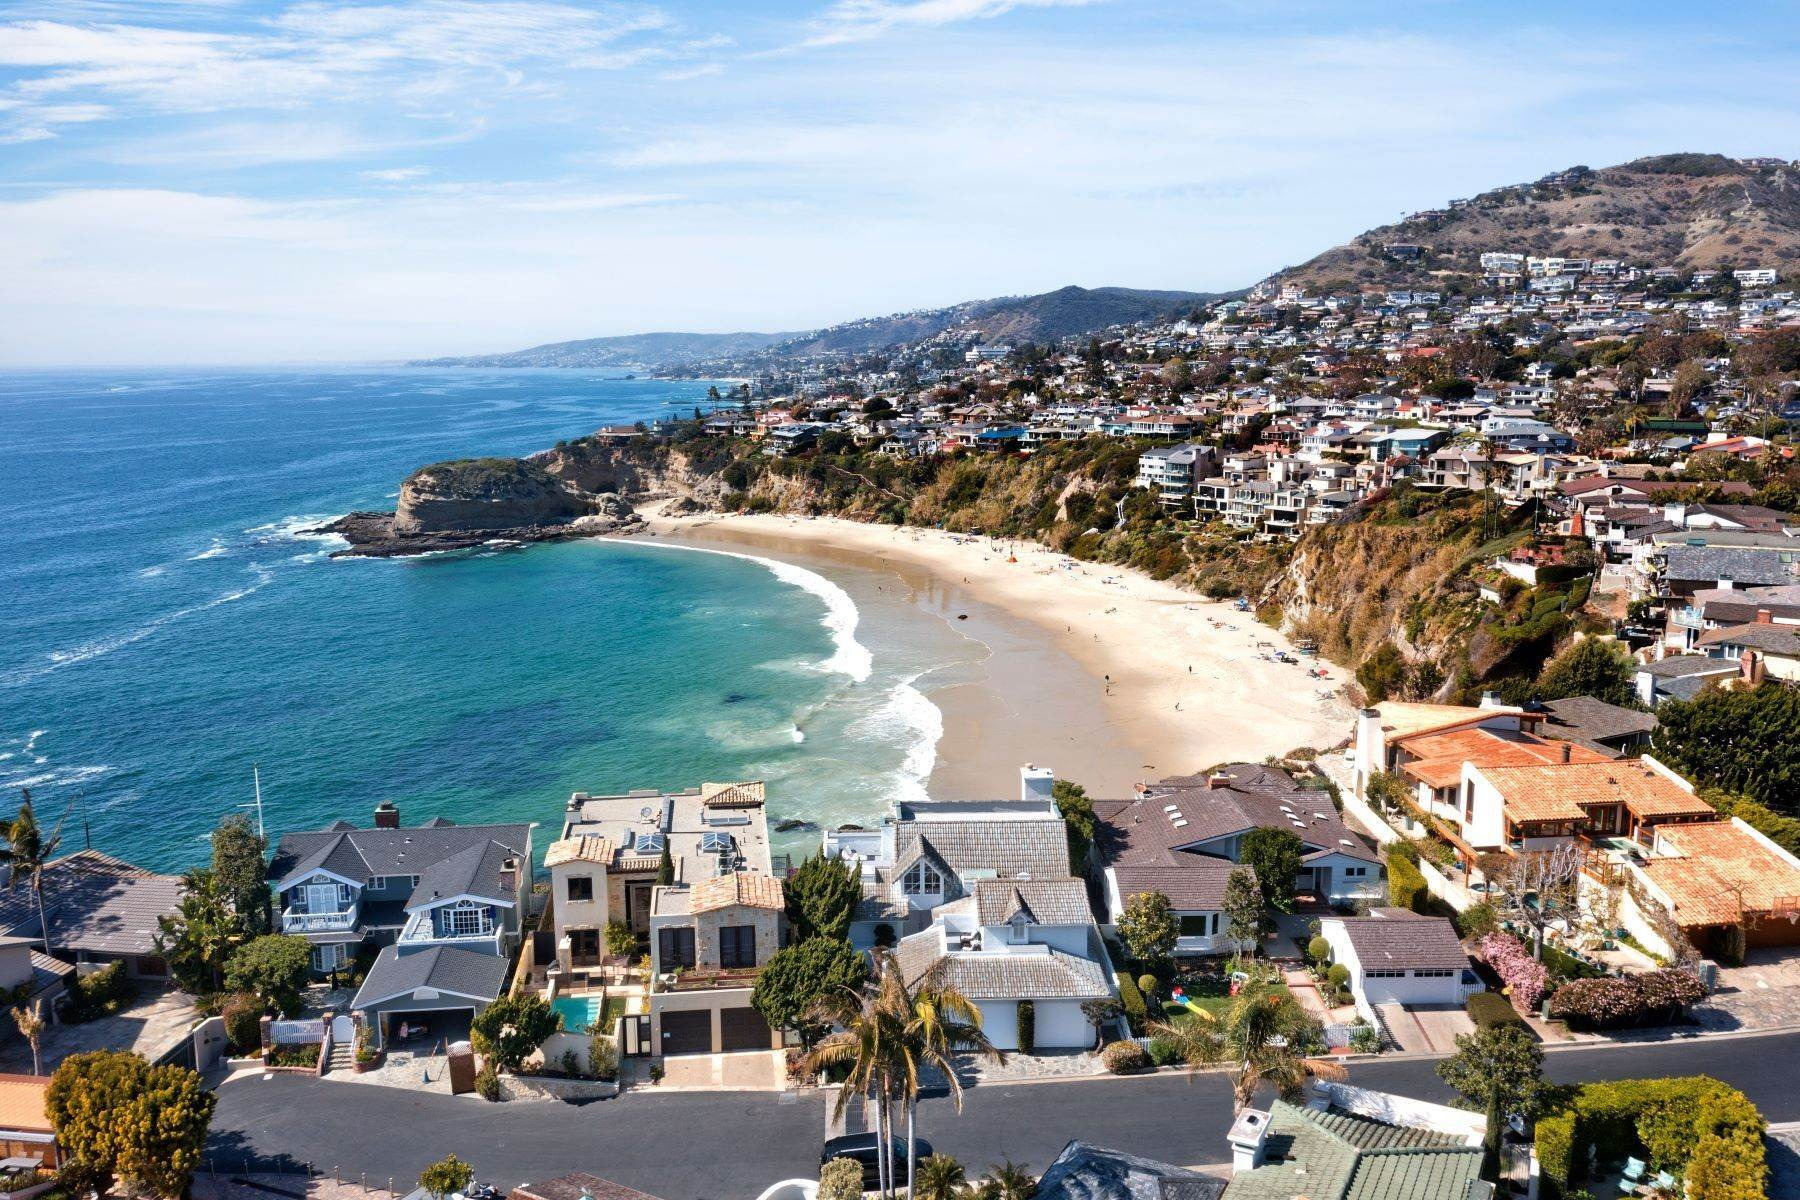 3. Single Family Homes for Sale at 112 South La Senda Drive, Laguna Beach, CA 92651 112 South La Senda Drive Laguna Beach, California 92651 United States